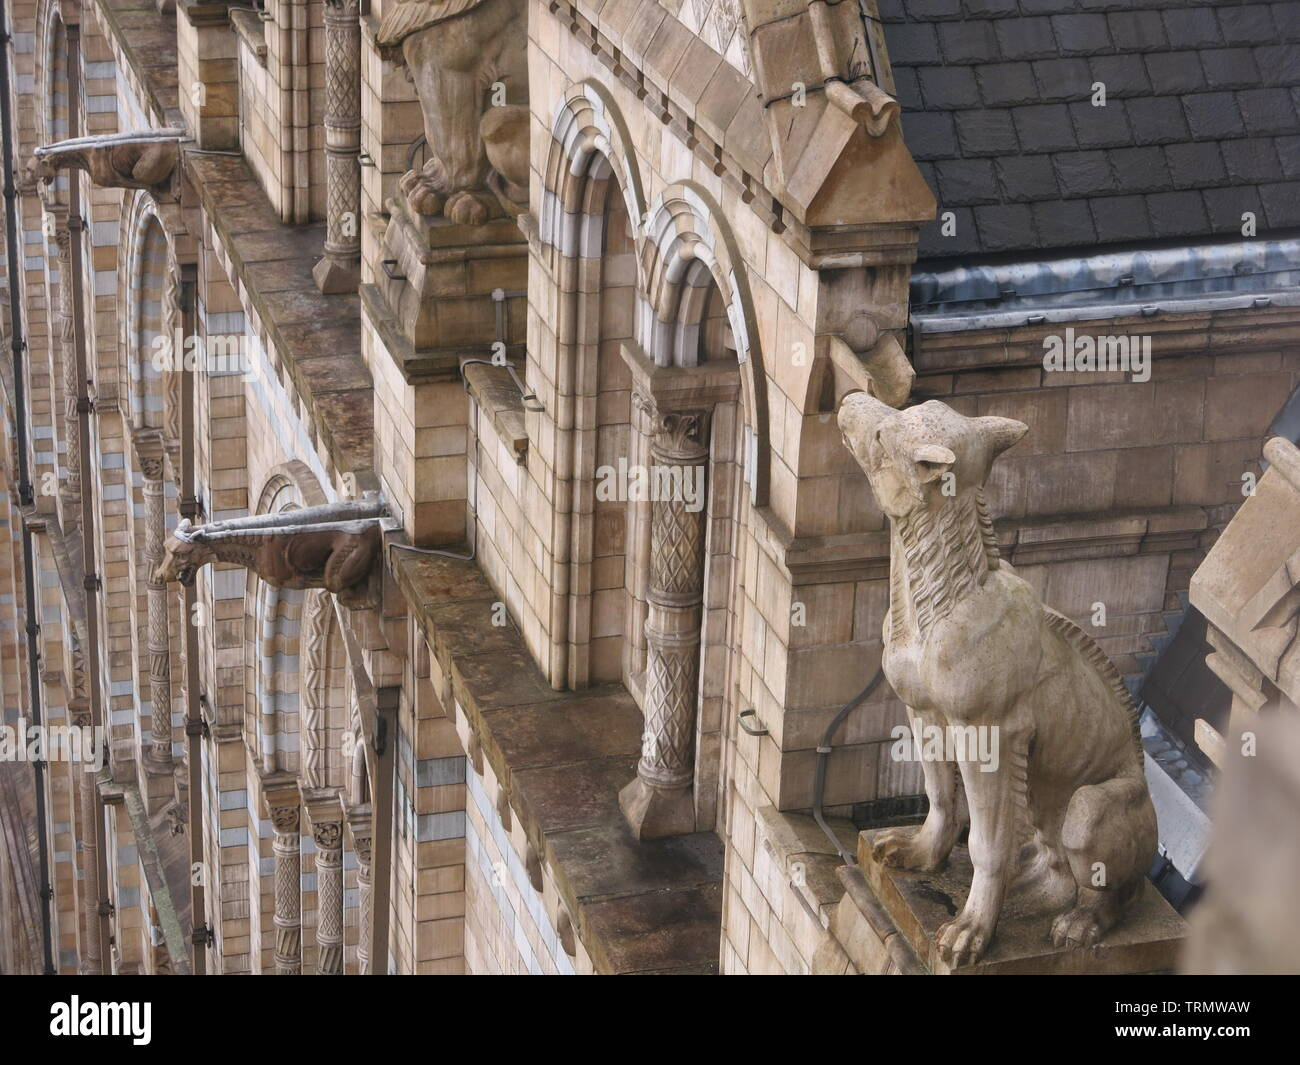 Photo of the ornate terracotta stonework and statues high up on a façade of the Natural History Museum, an iconic London landmark in Romanesque style Stock Photo